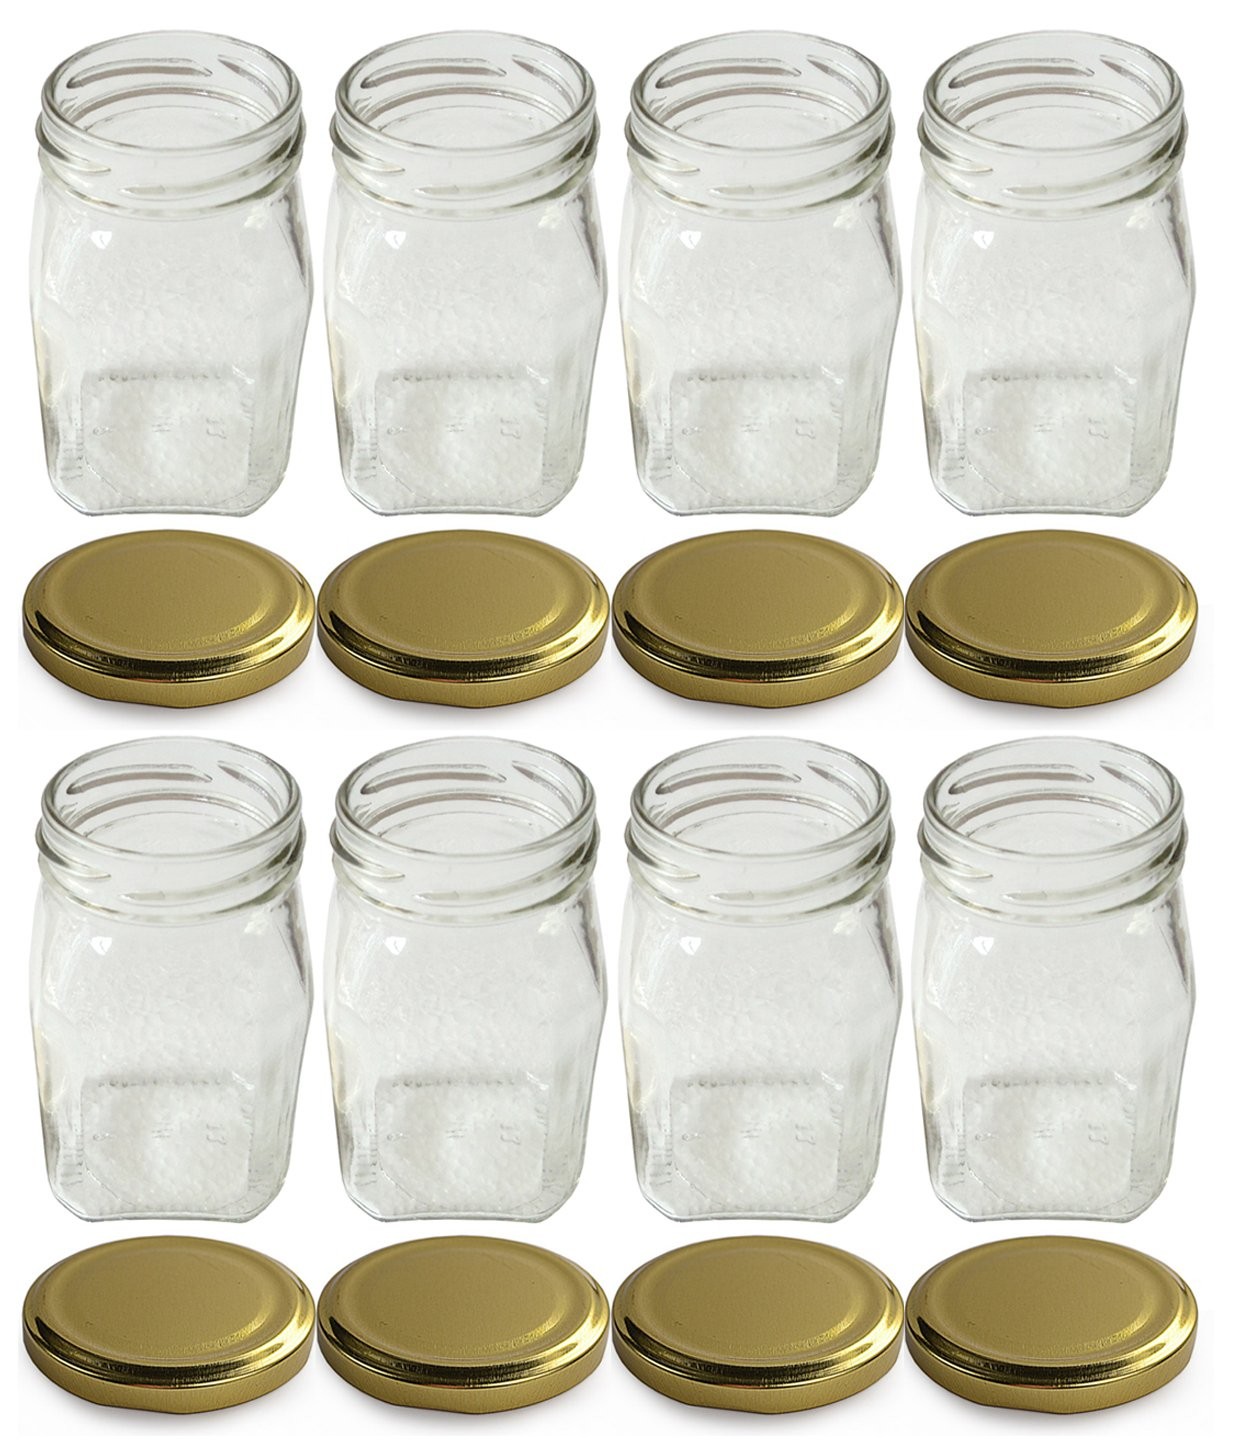 Favola 250 Gram (Gm) Lead Free Square Glass Jar and Container with Rust Proof Air Tight Lid - (Pack of 8)